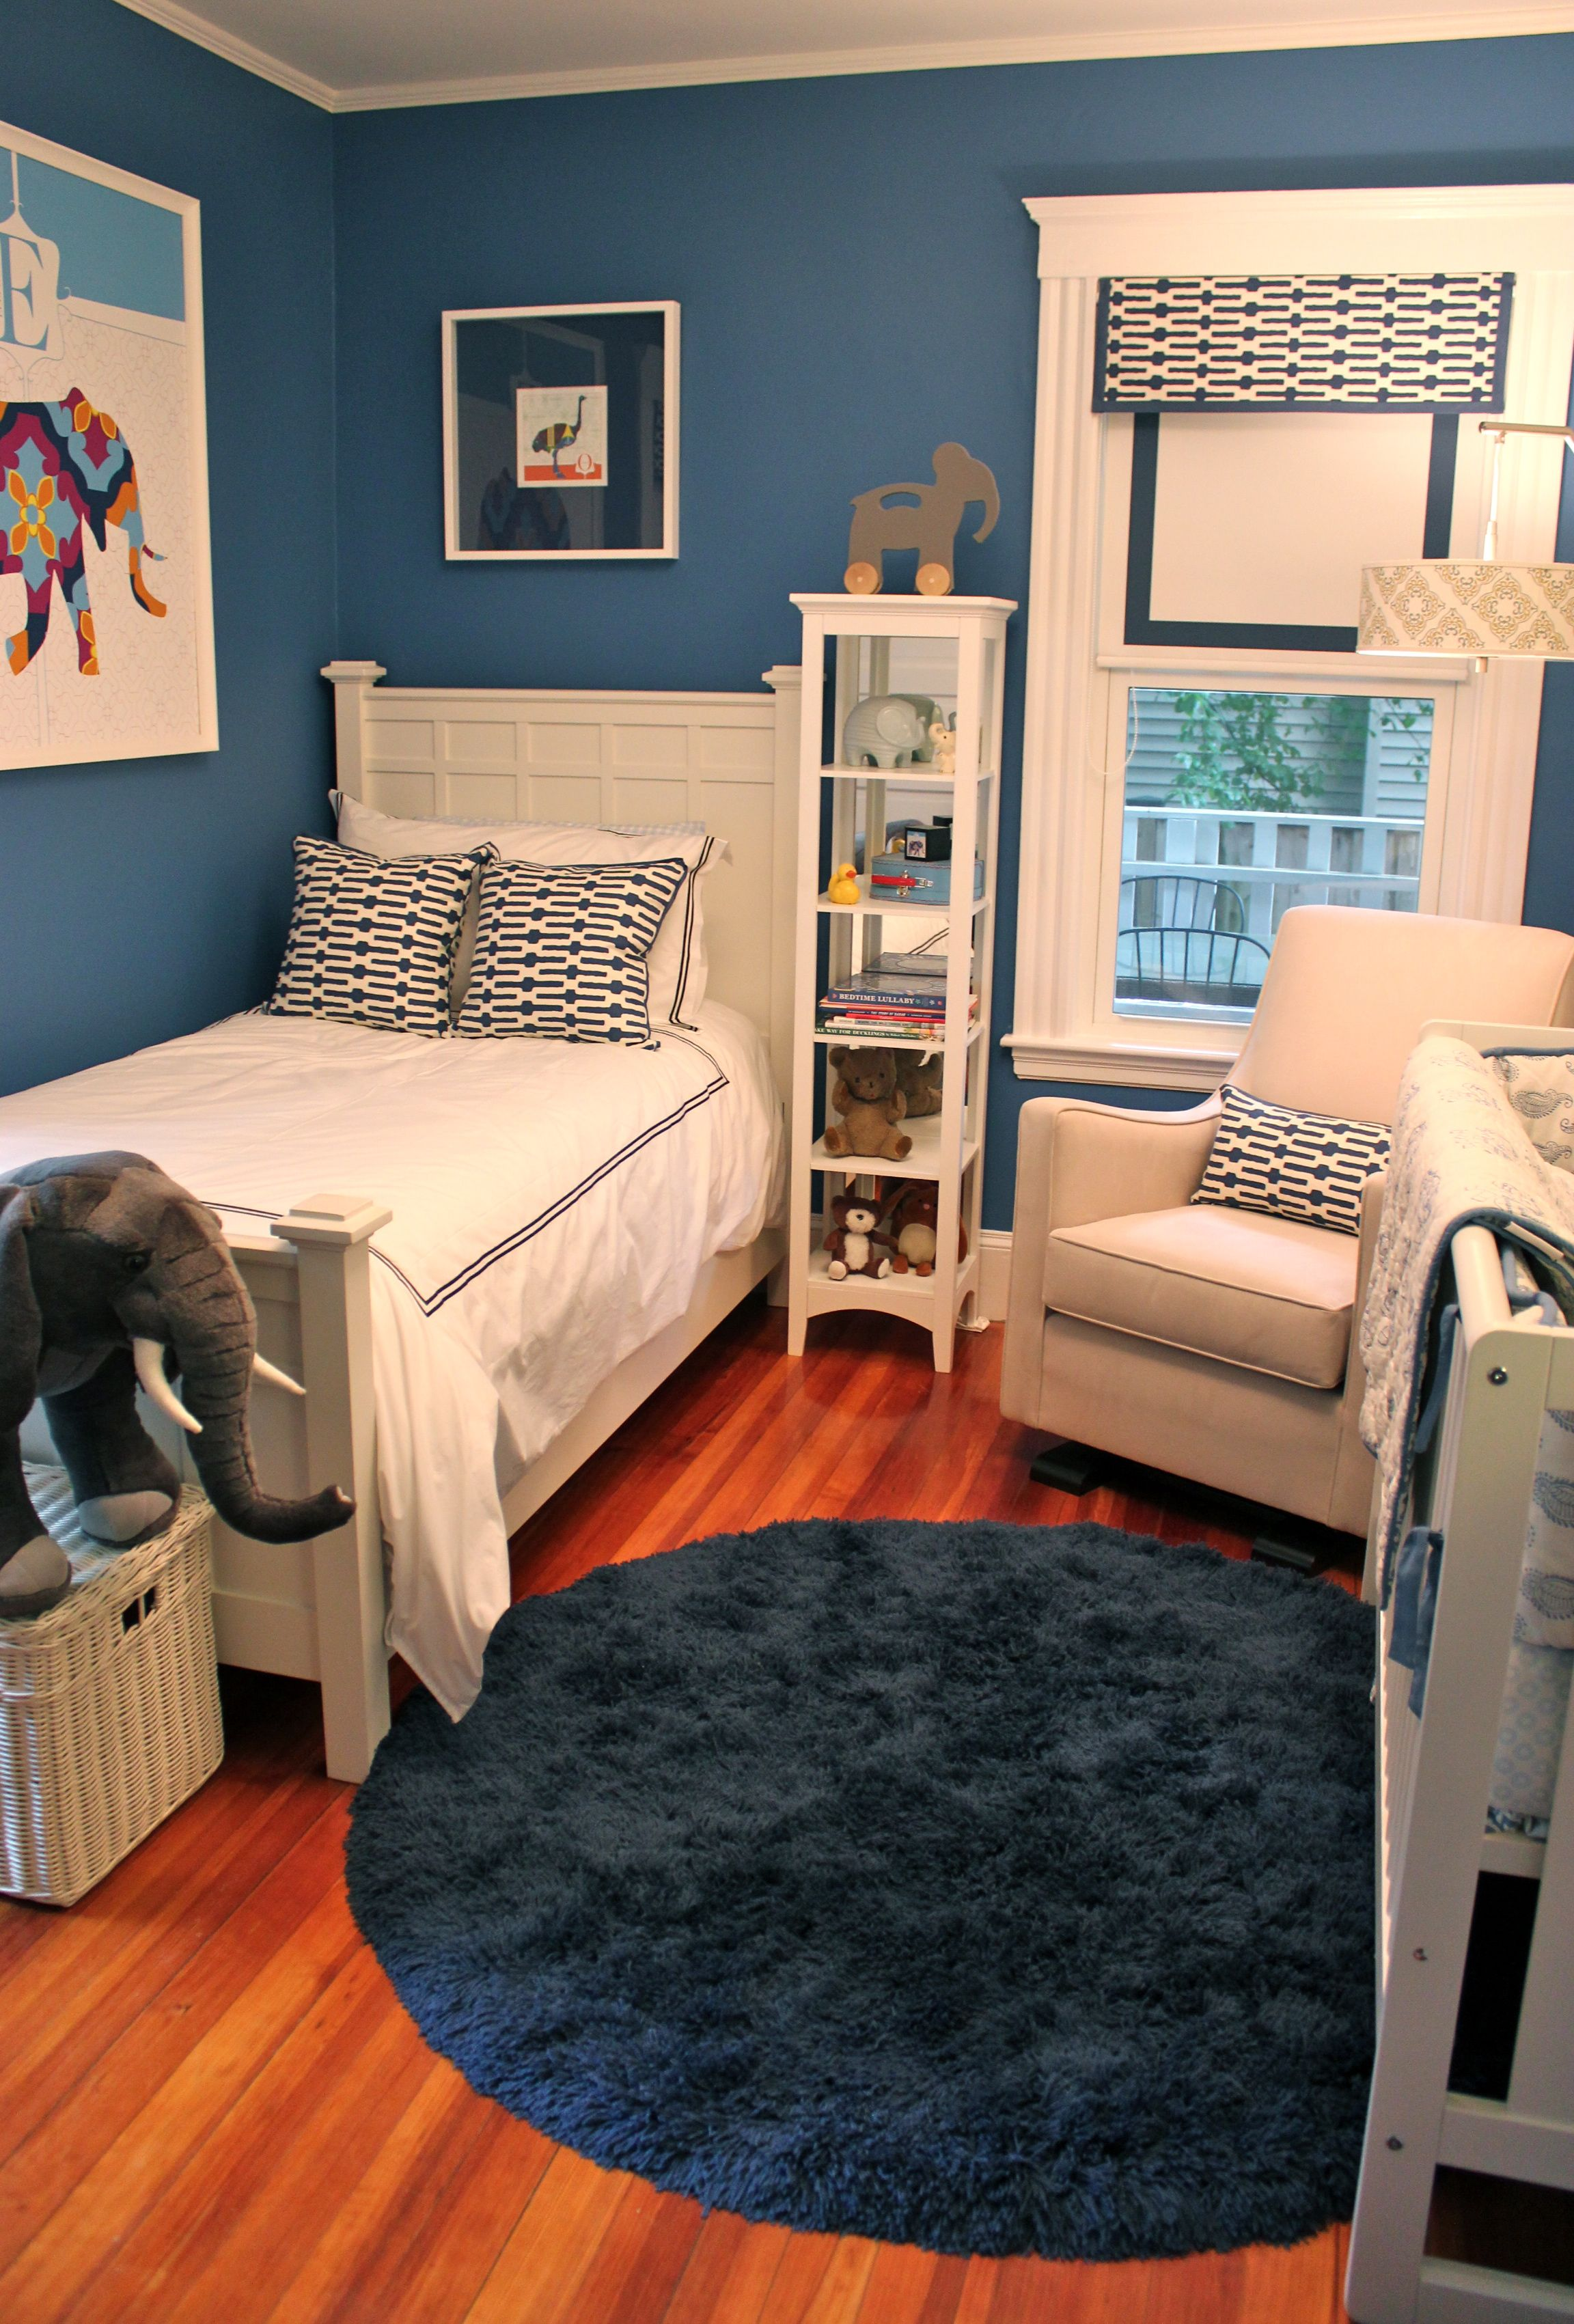 Baby bed airplane - Brooklyn Berry Designsshared Bedroom Brooklyn Berry Designs